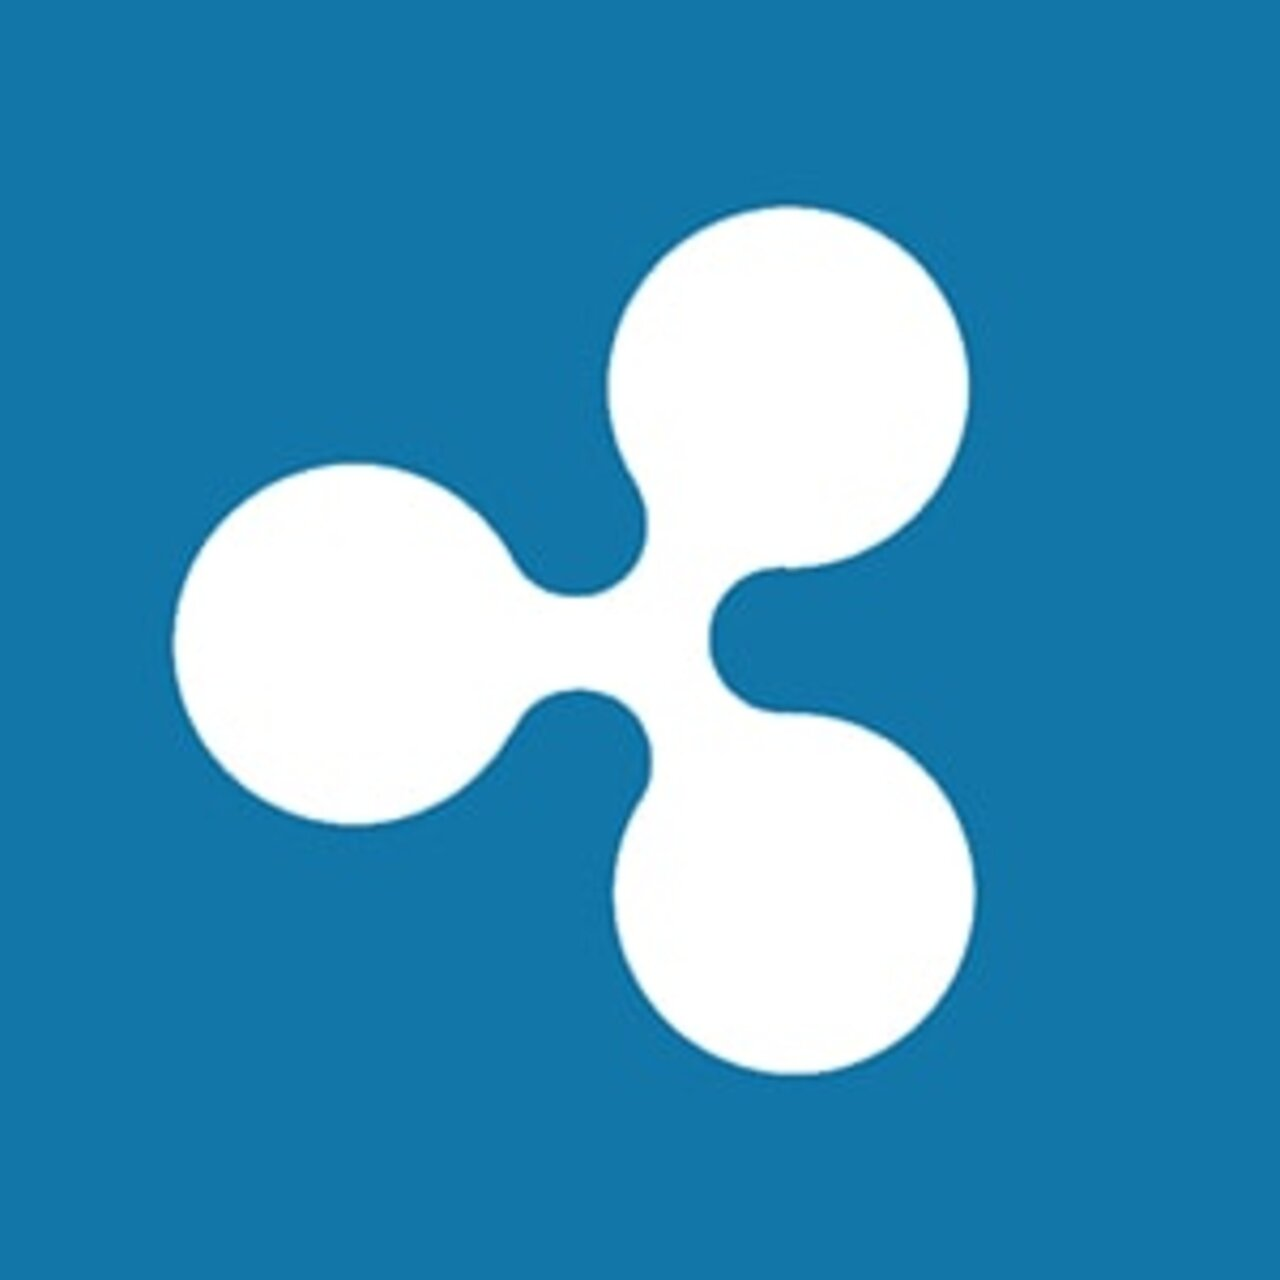 Ripple overview: In 2025 XRP will be used by all Japanese banks